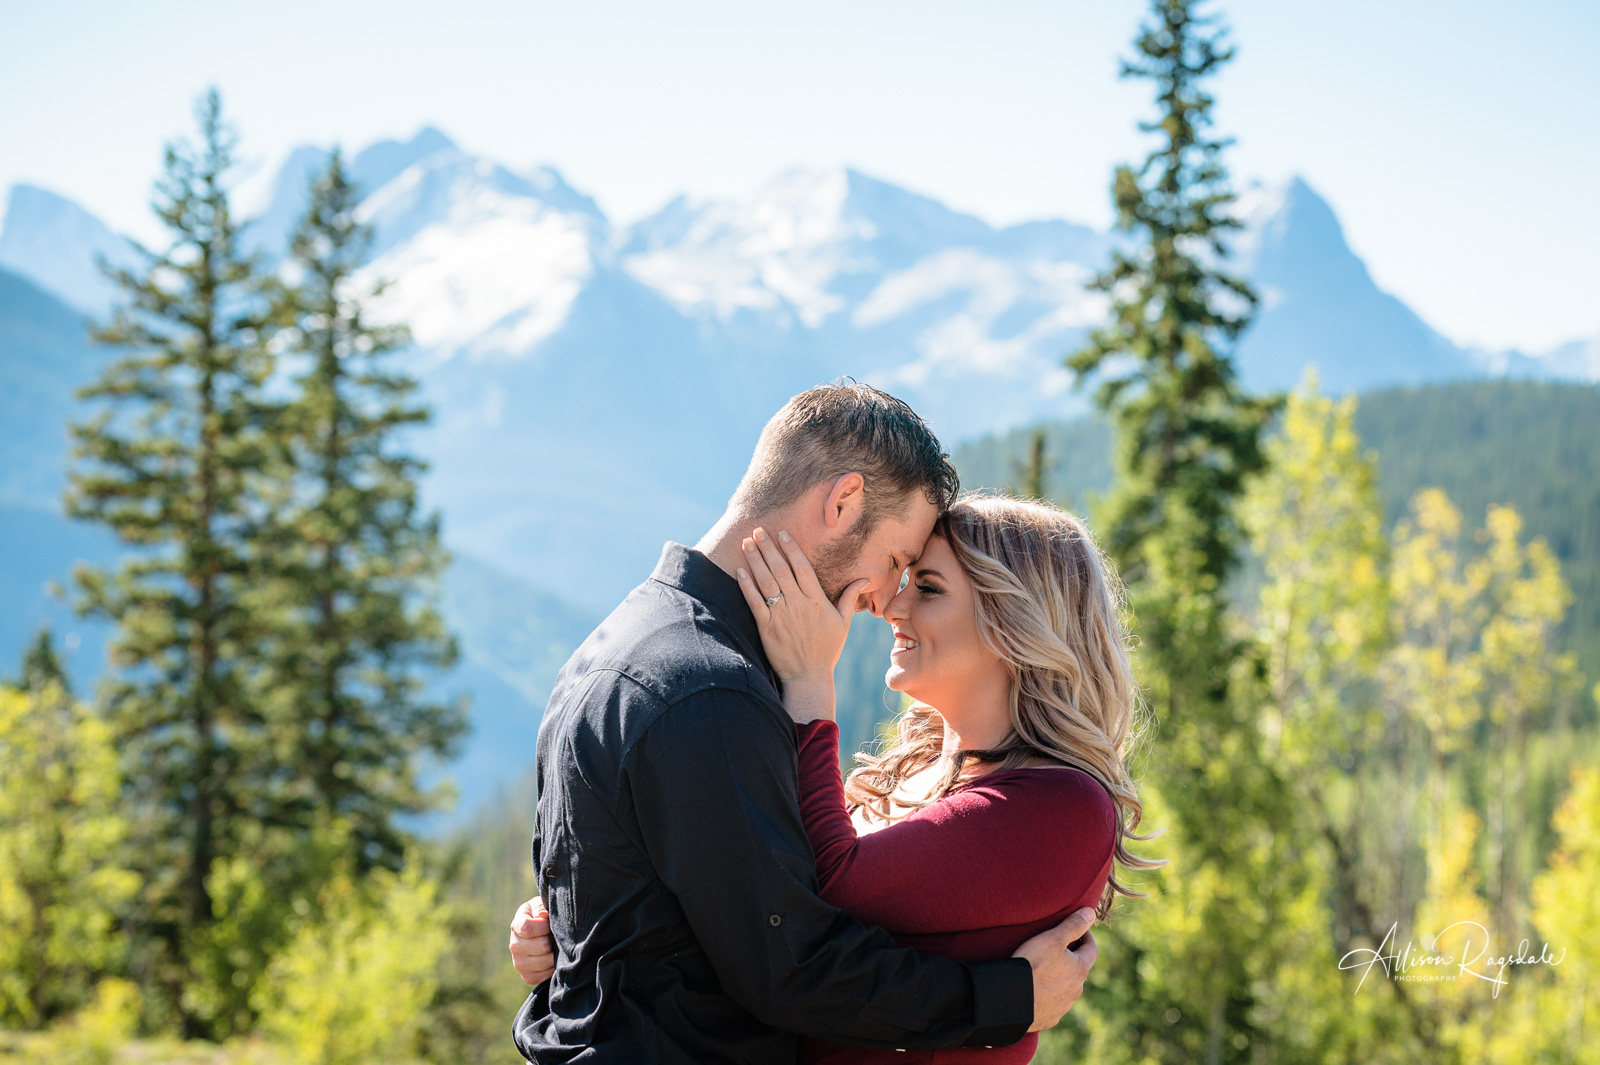 Jessie & Justin's Colorado Fall Engagement Session